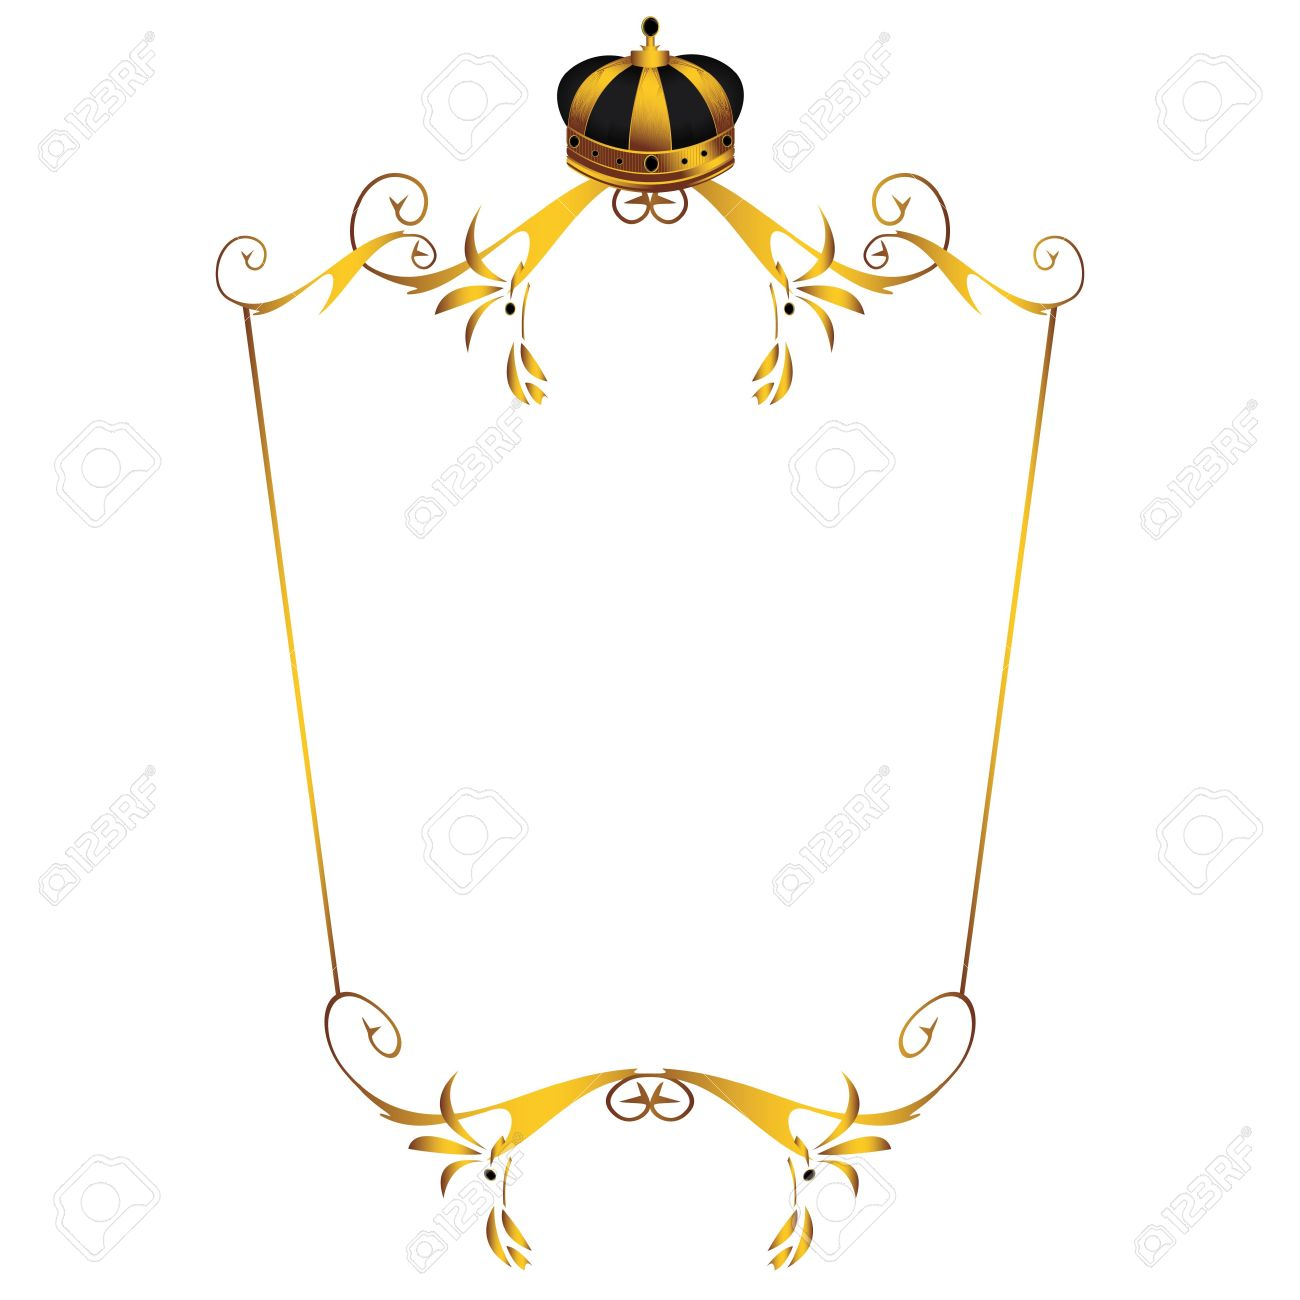 gold crown on frame isolated on a white background stock photo 4829728